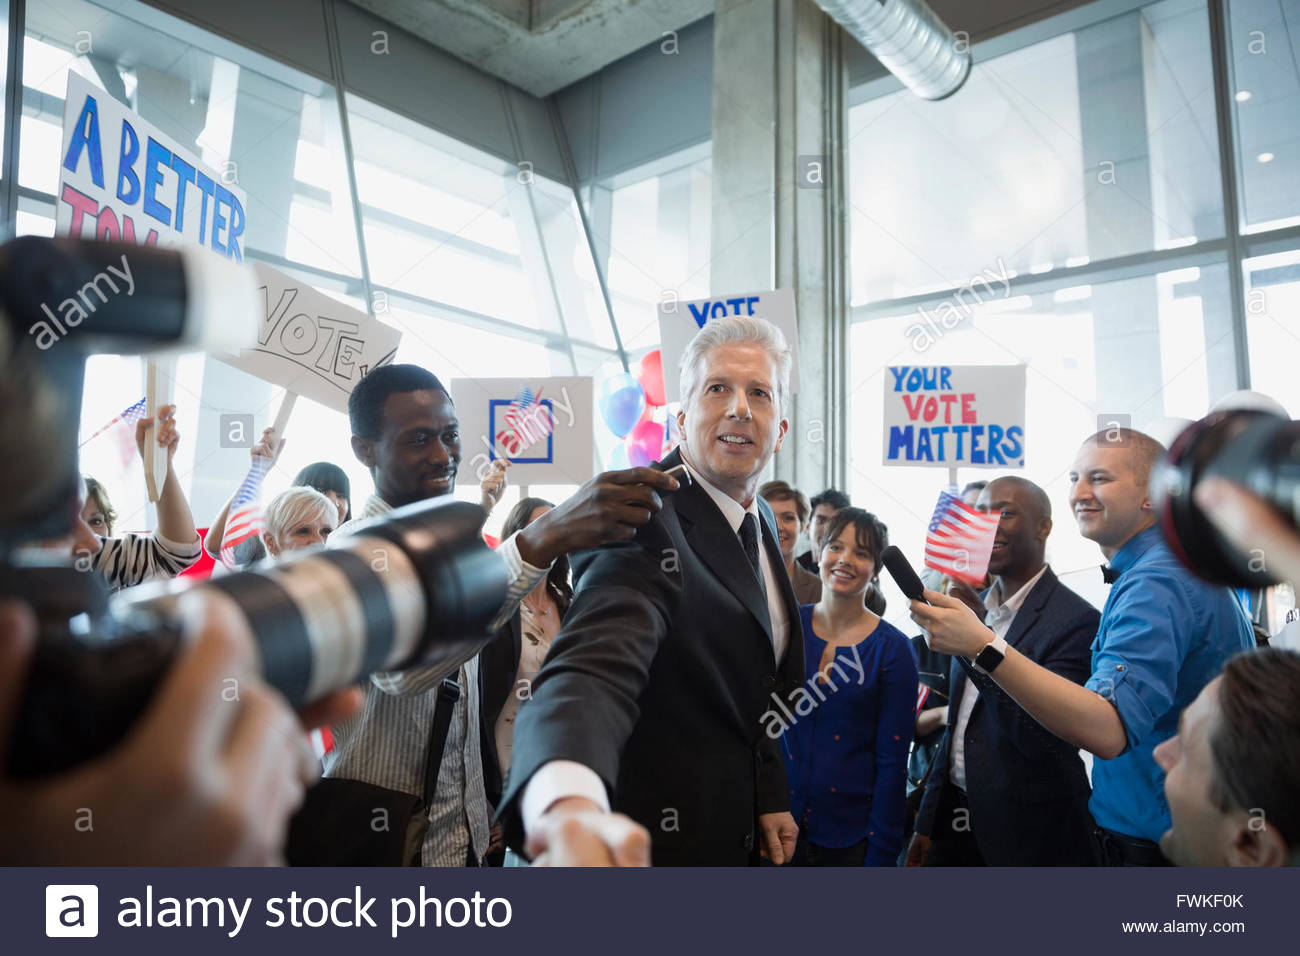 Politician shaking hands with crowd at political rally - Stock Image